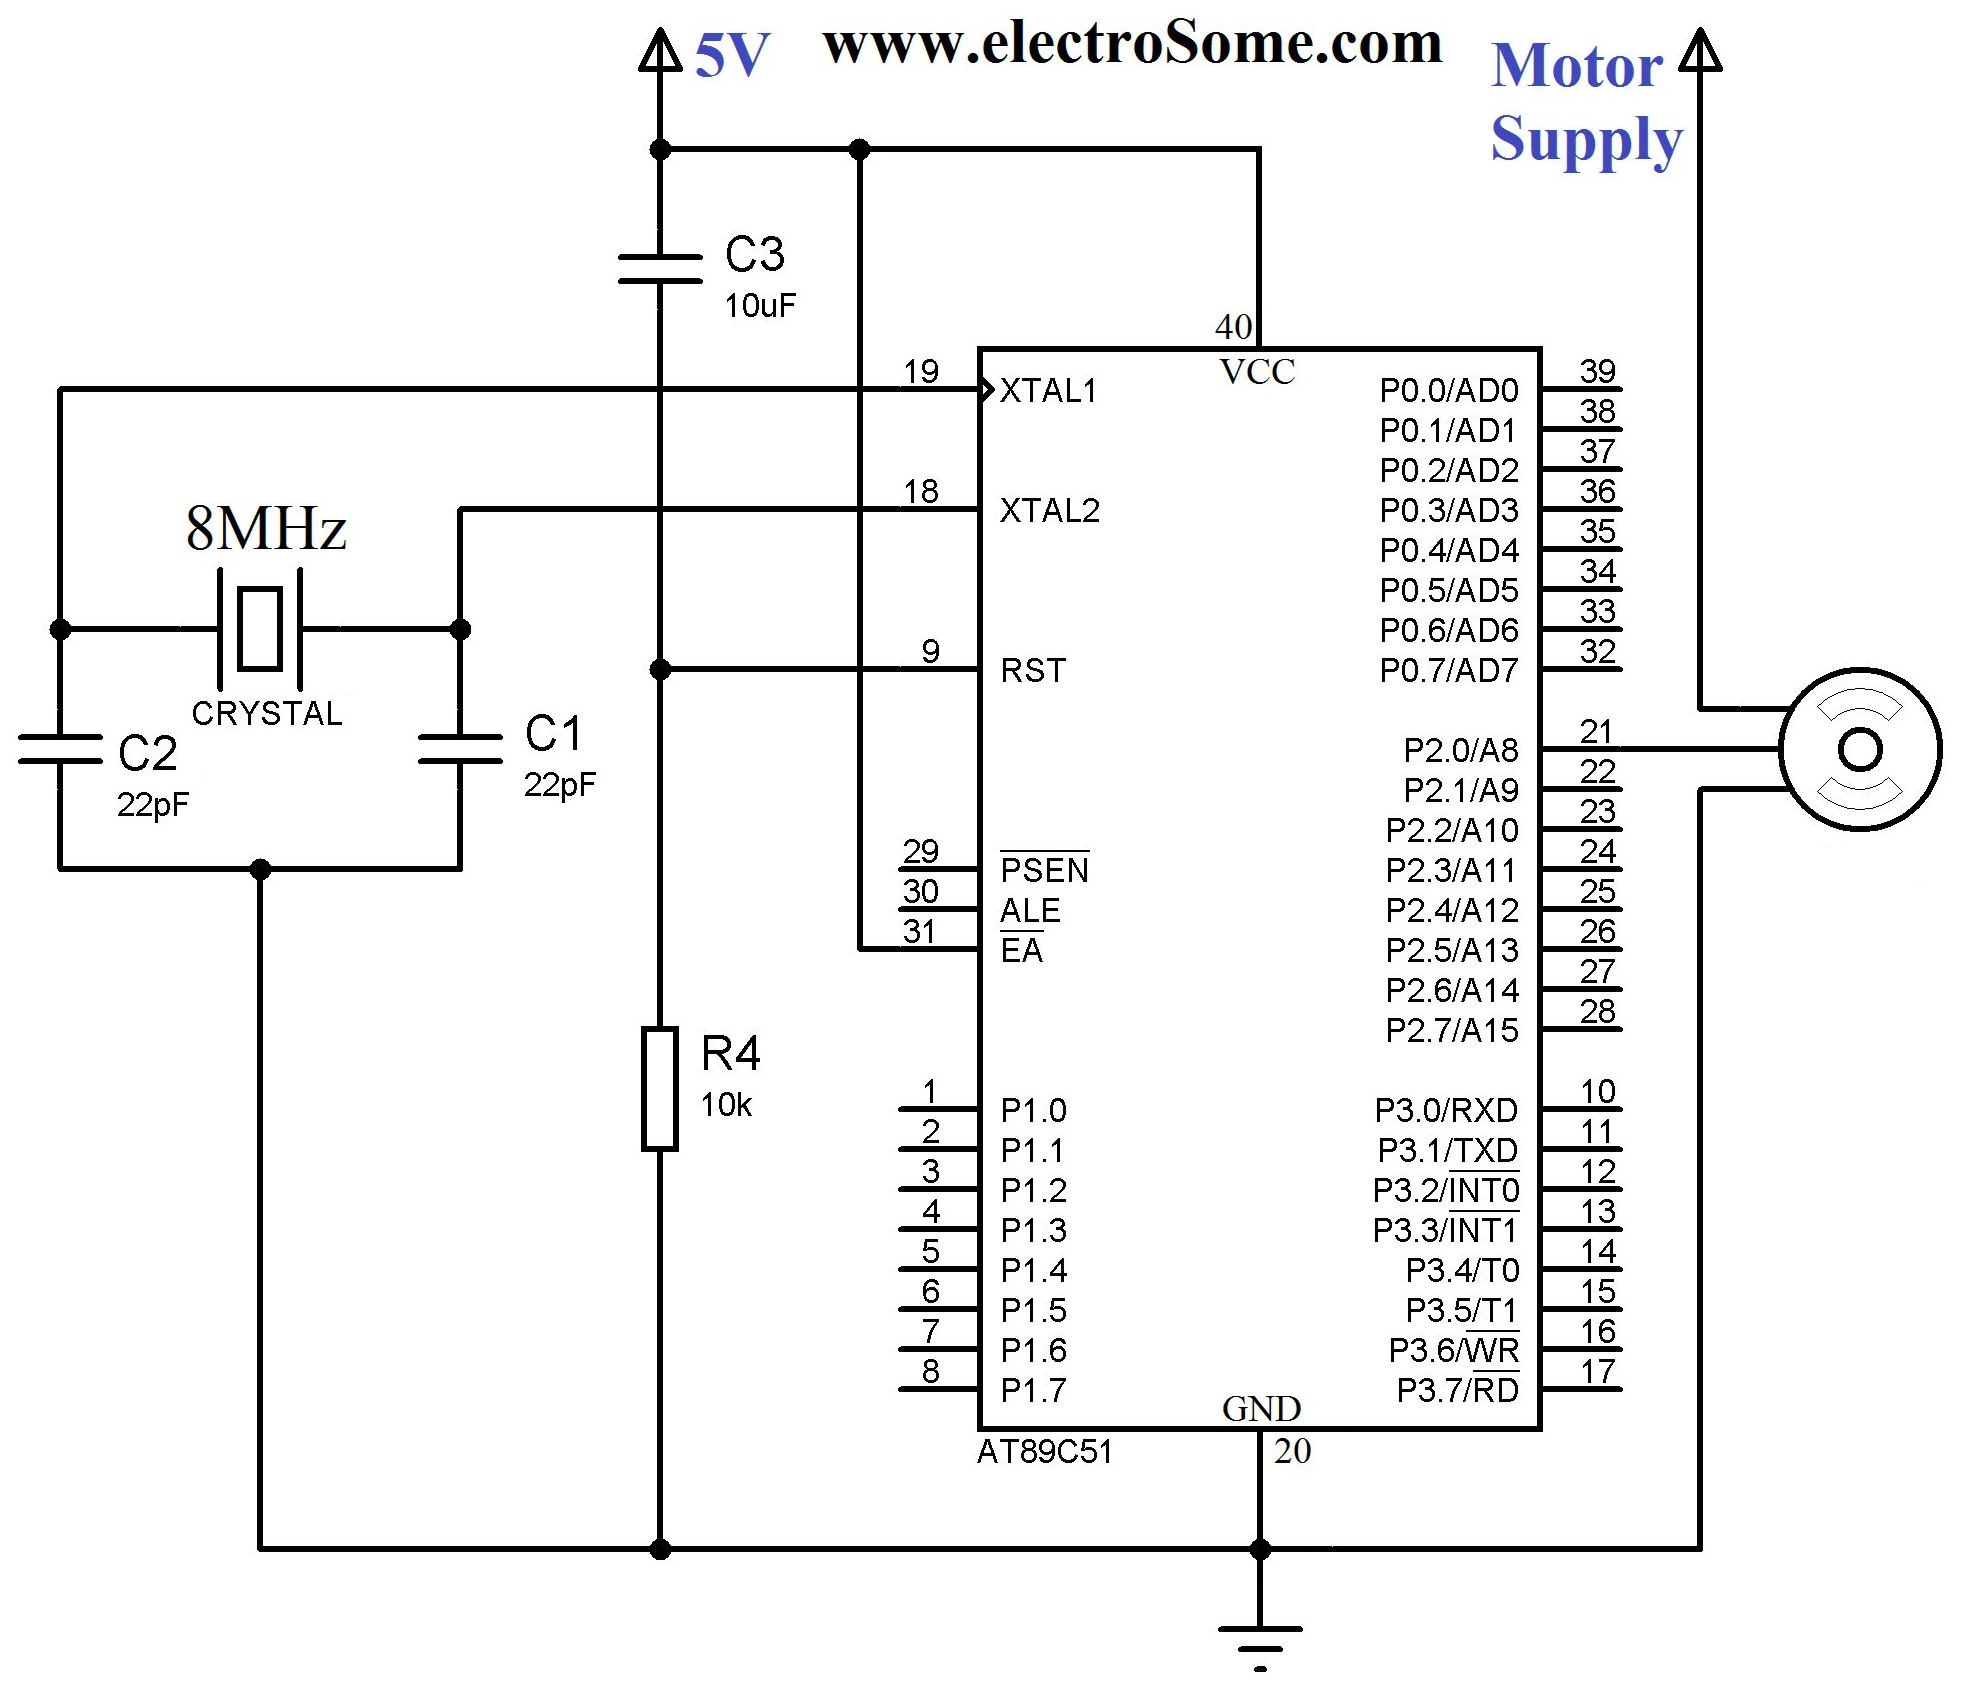 Servo Drive Motor Wiring Diagram Library Scrcontrolheater Controlcircuit Circuit Seekiccom For Arduino Control By Weight Force Sensor Interfacing With 8051 Using Keil C